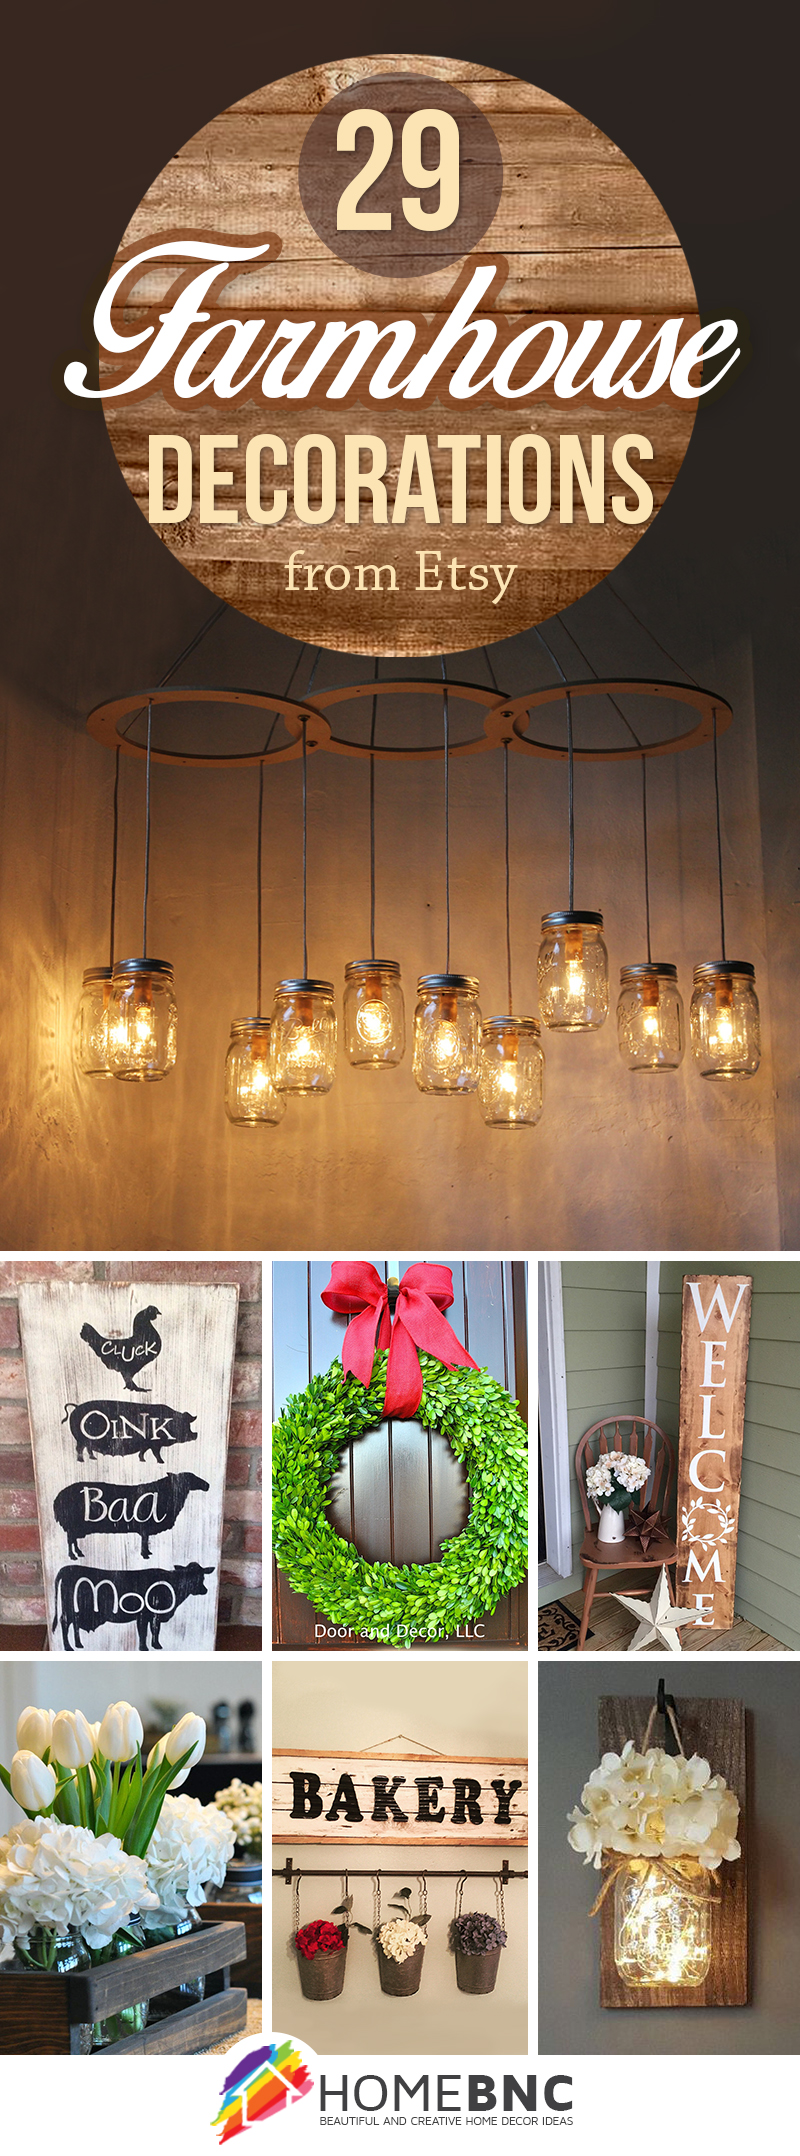 Farmhouse Decorations